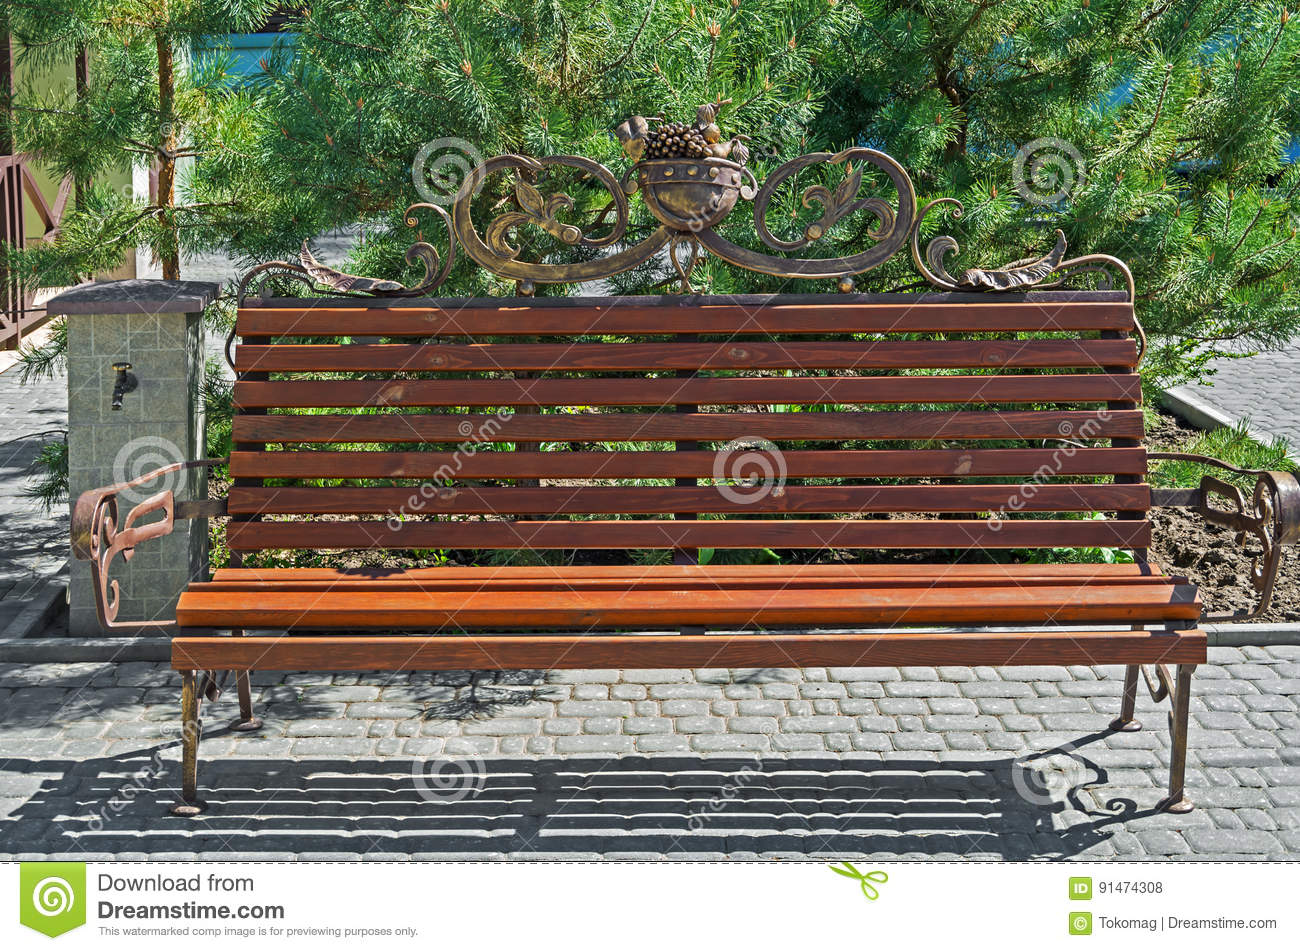 Phenomenal Bench In Garden Stock Photo Image Of Outdoors Empty 91474308 Caraccident5 Cool Chair Designs And Ideas Caraccident5Info